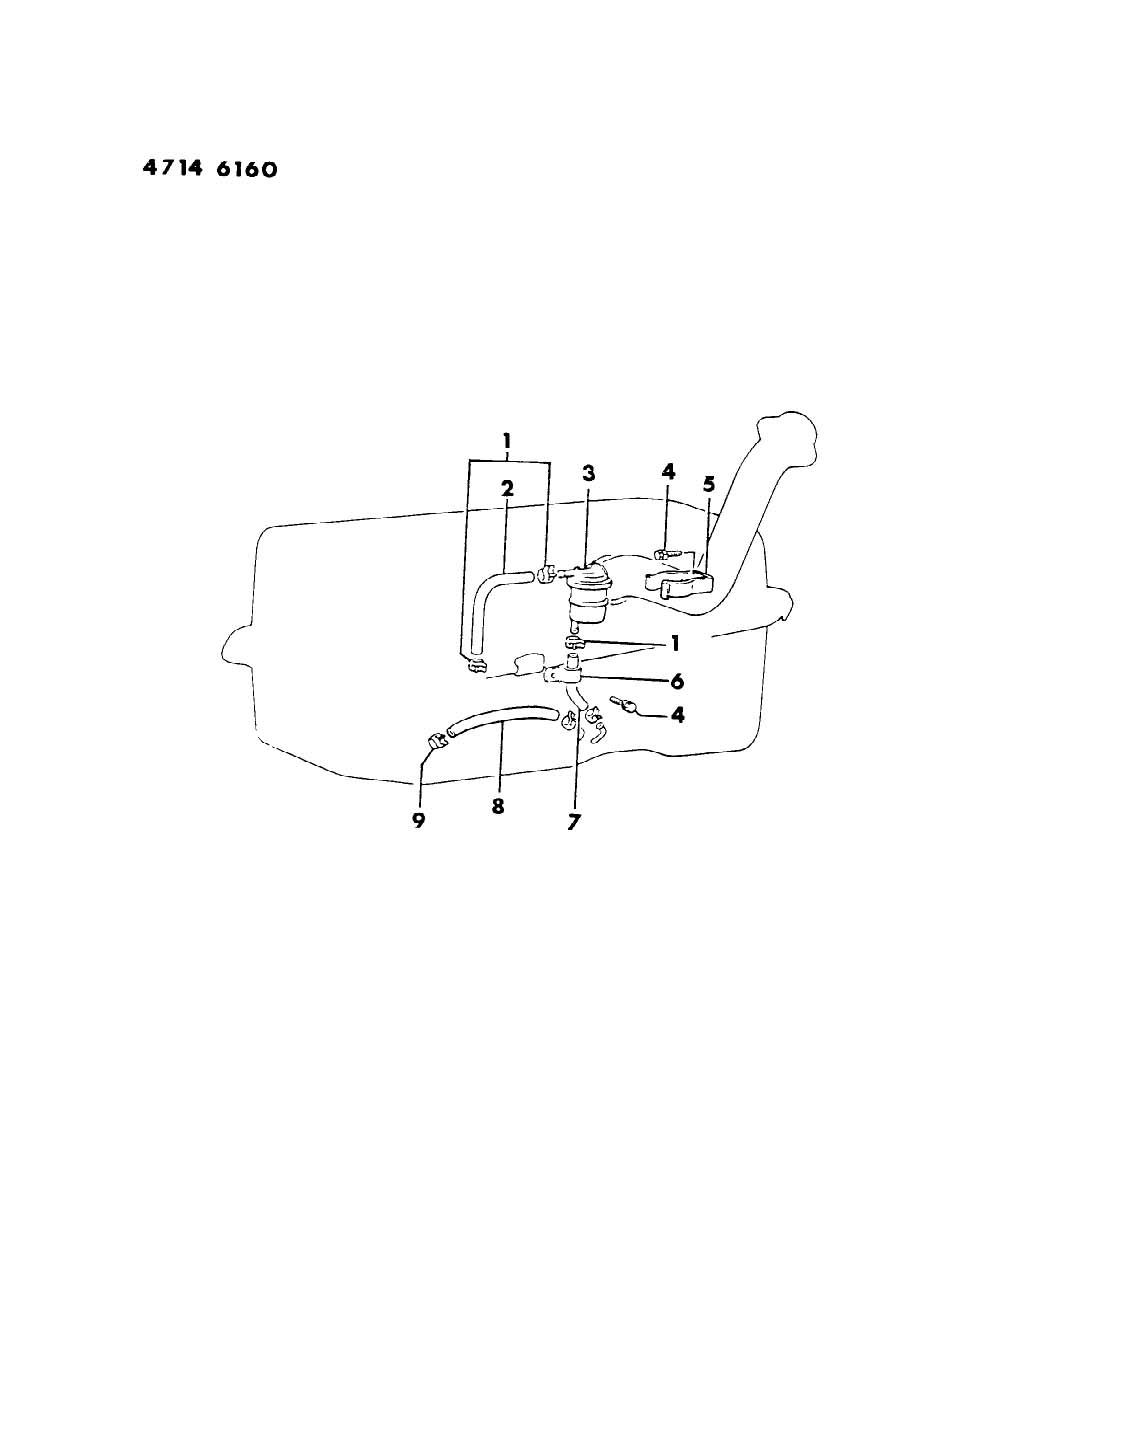 FUEL FILTER - OPIONAL 18 GAL. TANK MODEL 27 RWD-PICK UP - A ENGINE Diagram